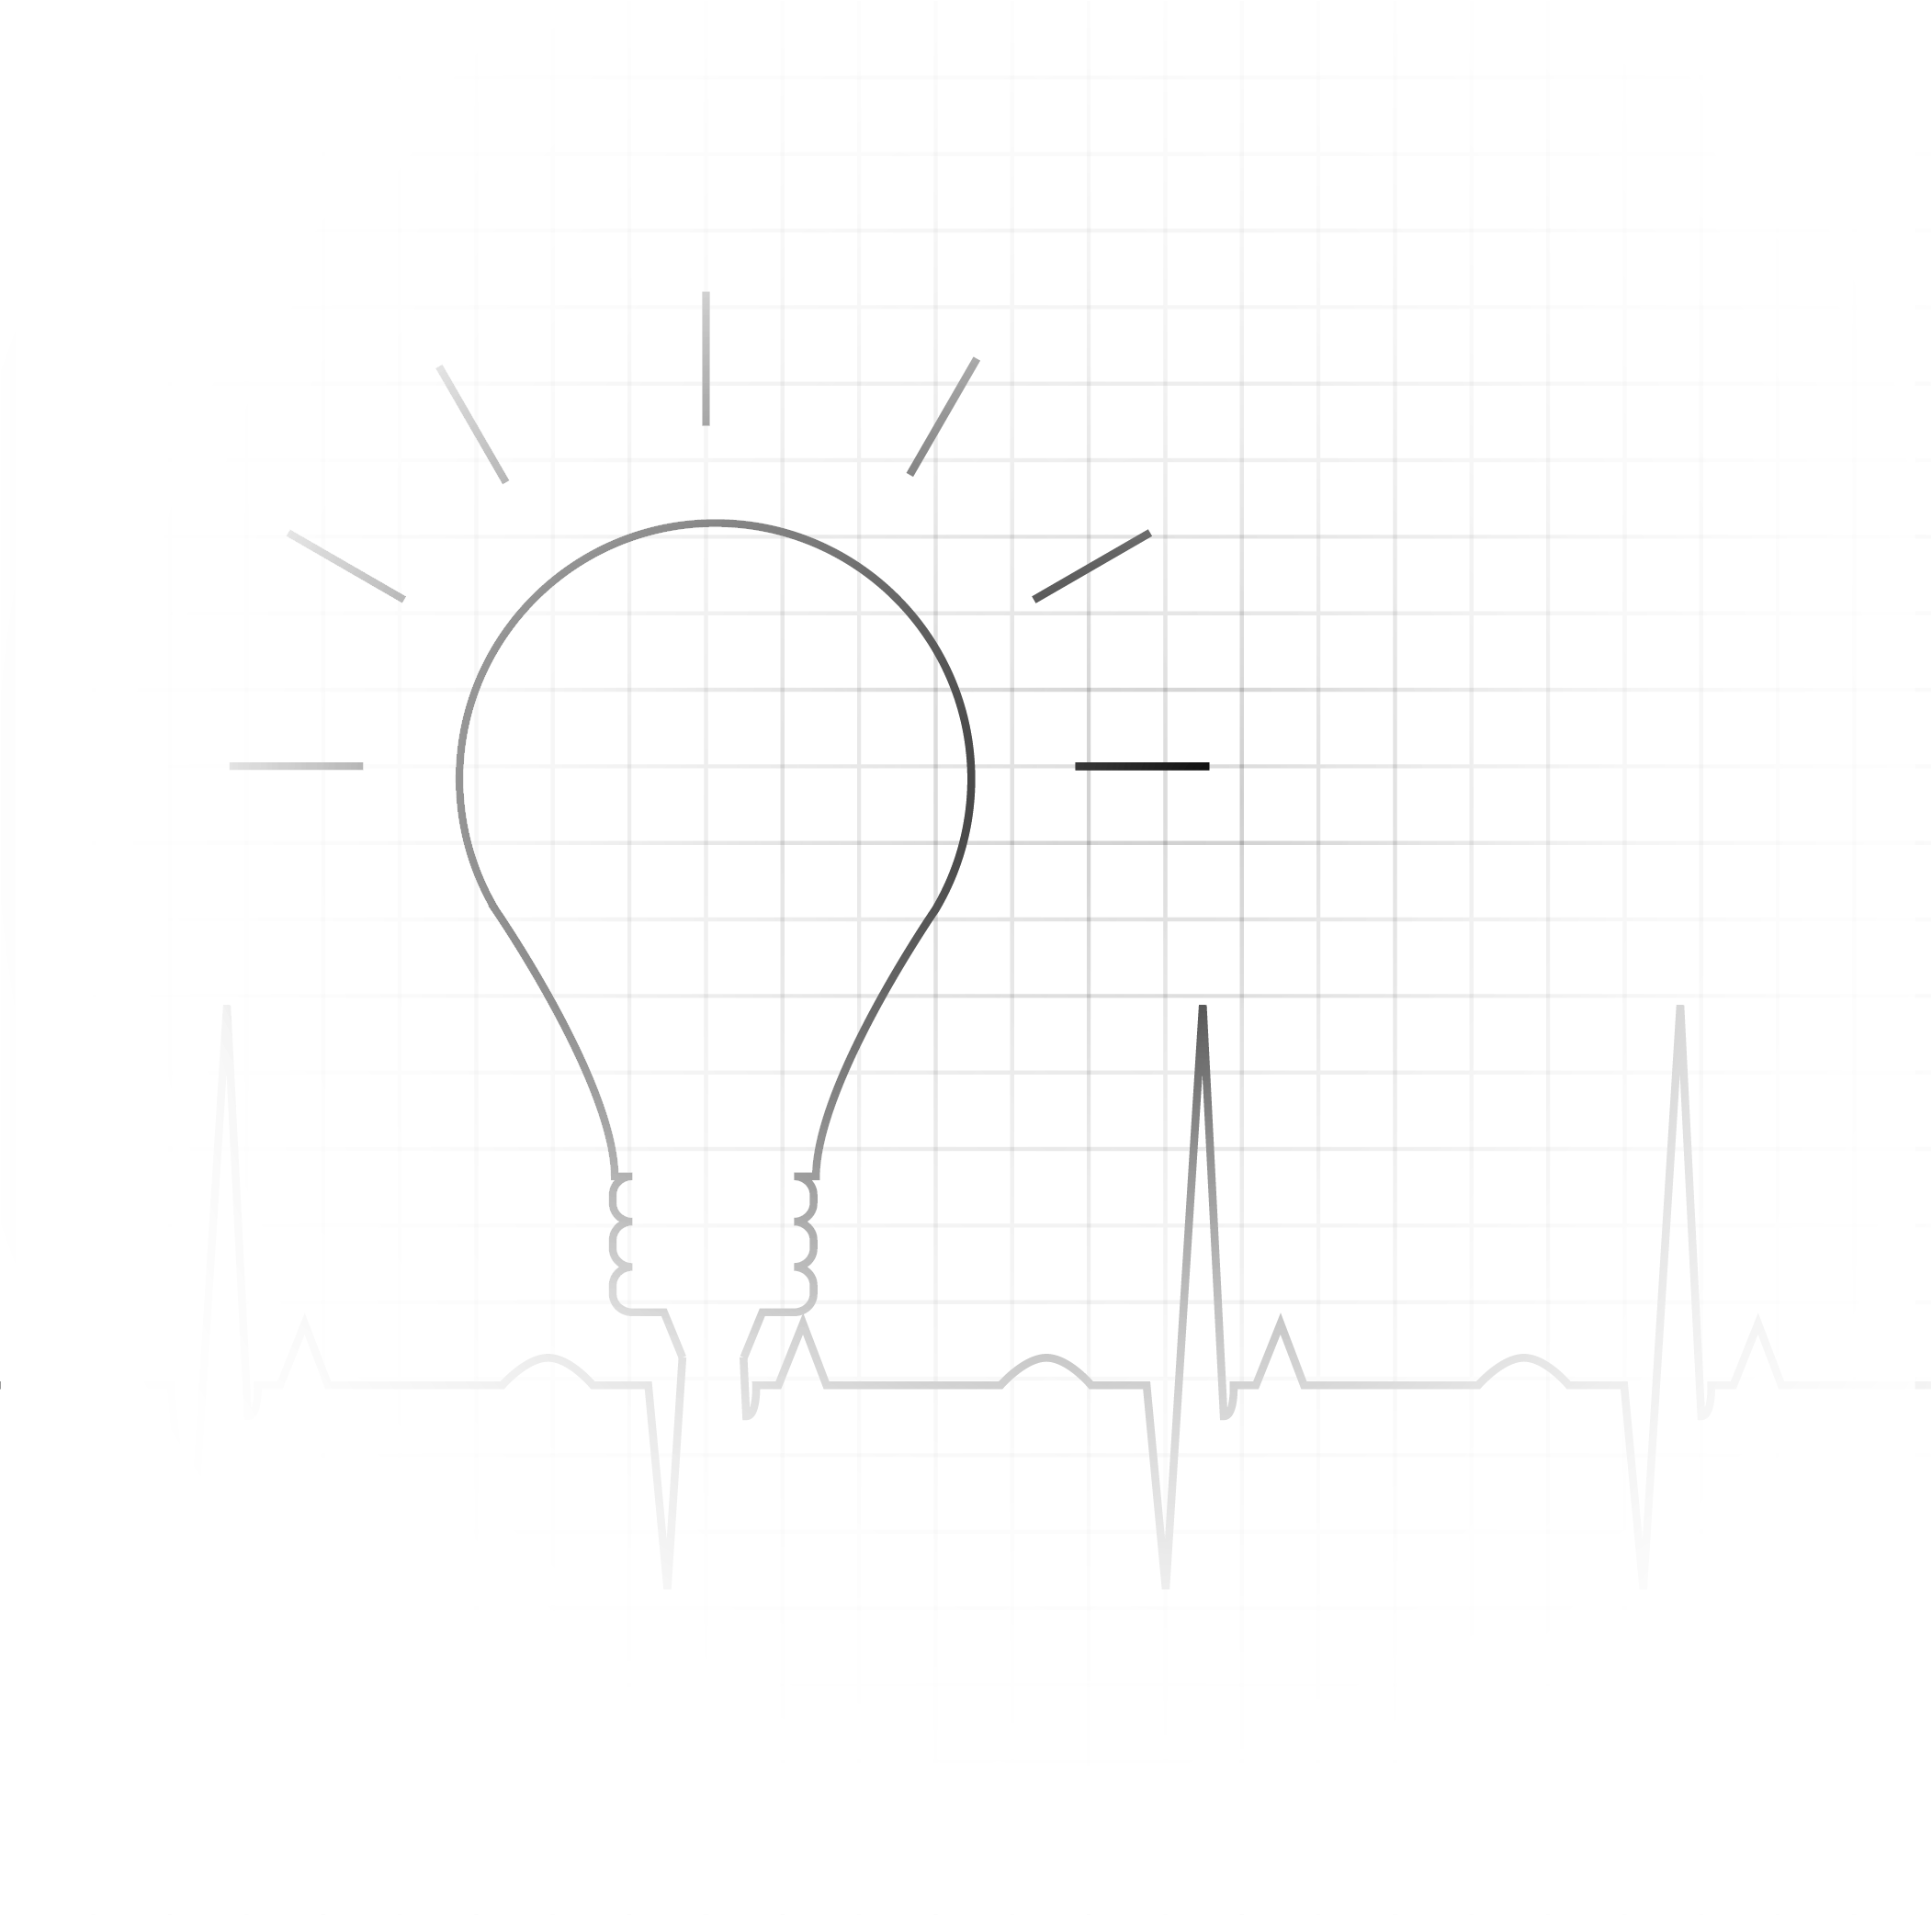 The HCI Group | Healthcare 2025: Improving care by embracing risk and accepting change